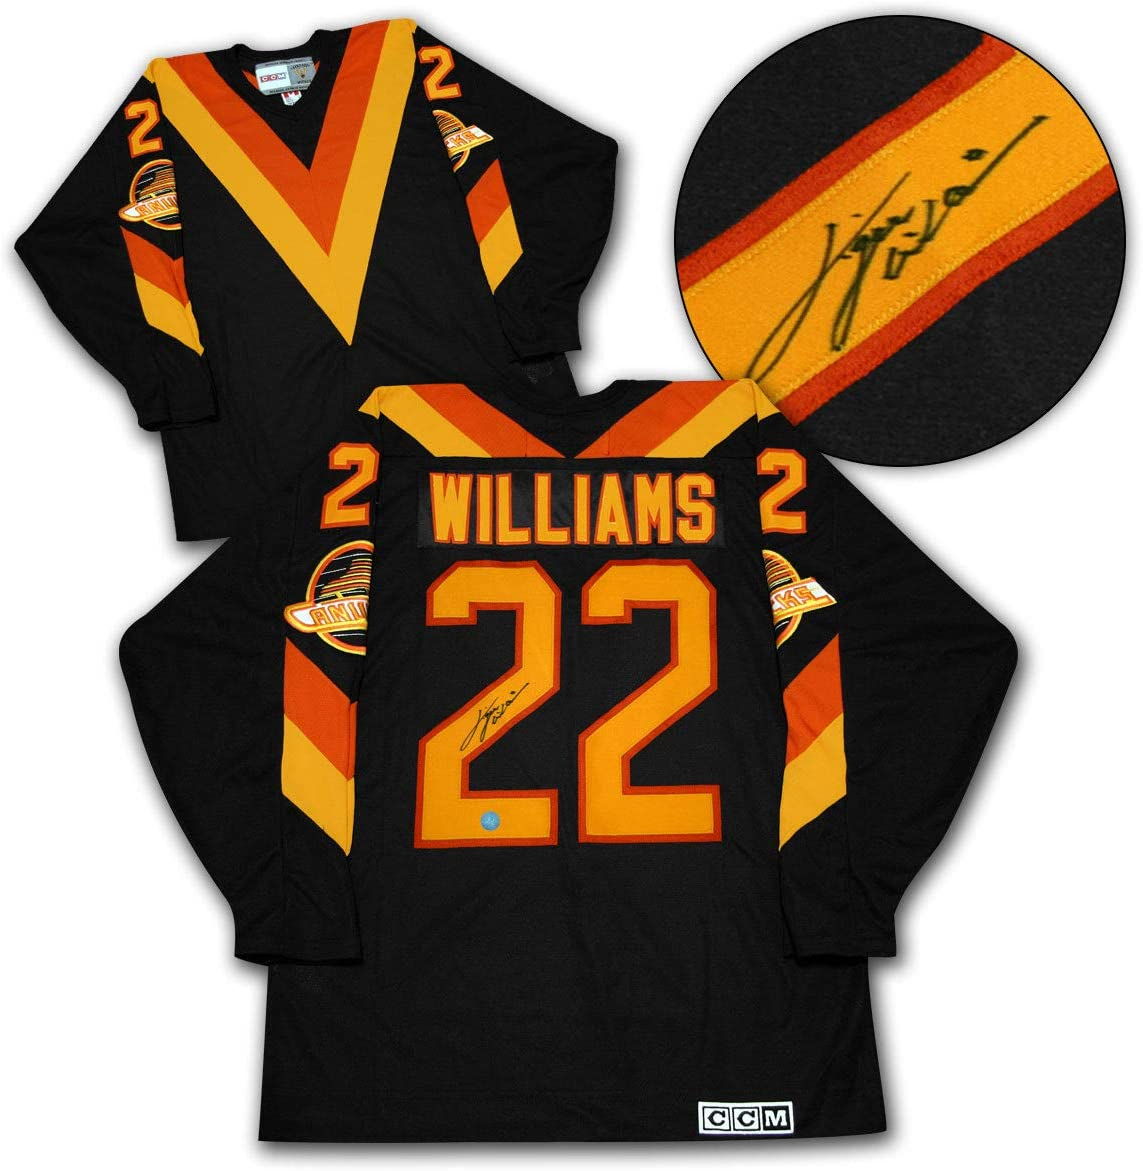 Tiger Williams Vancouver Canucks Signed With Pim Vneck Ccm Vintage Jersey At Amazon S Sports Collectibles Store